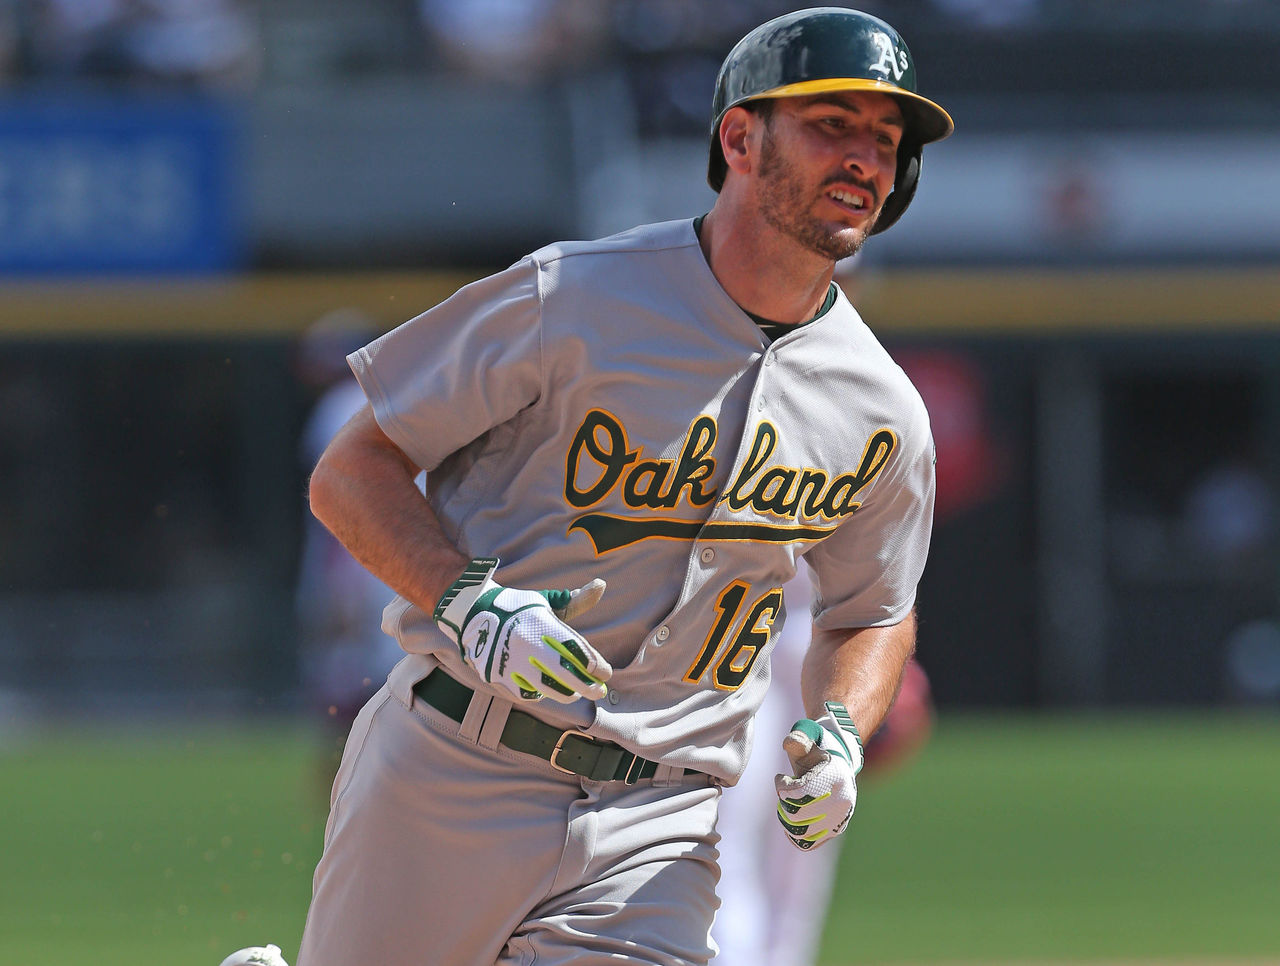 Cropped 2017 06 25t220124z 1244541046 nocid rtrmadp 3 mlb oakland athletics at chicago white sox